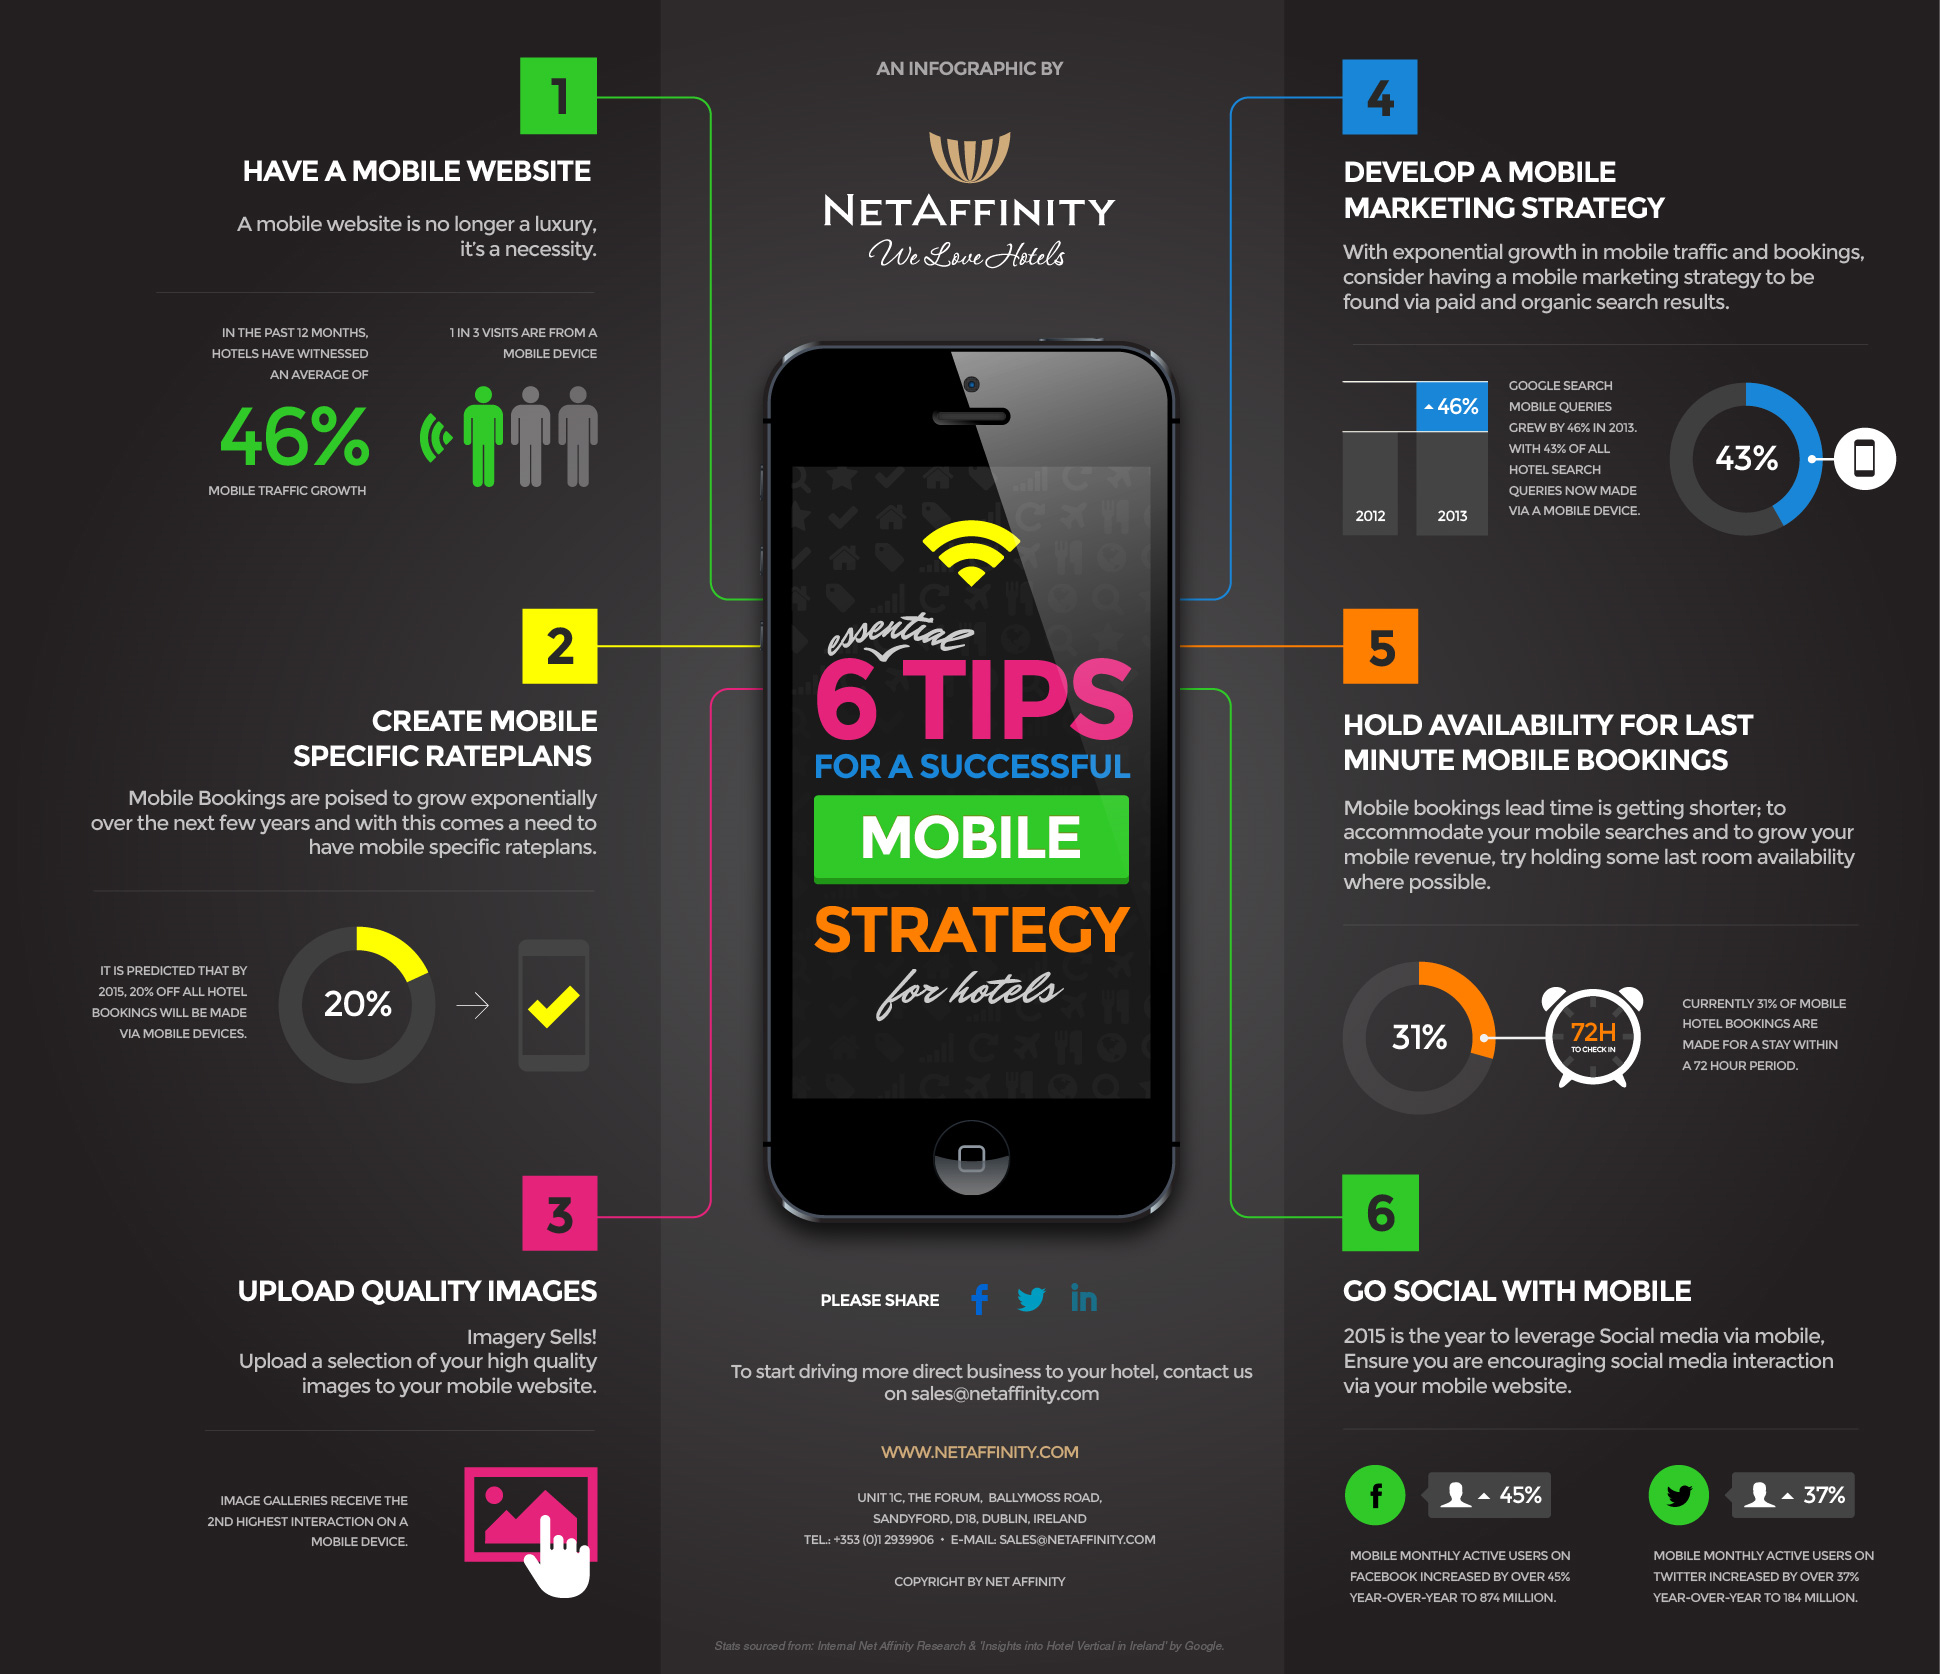 [INFOGRAPHIC] 'SIX Essential Tips for a Successful Mobile Strategy for Hotels""